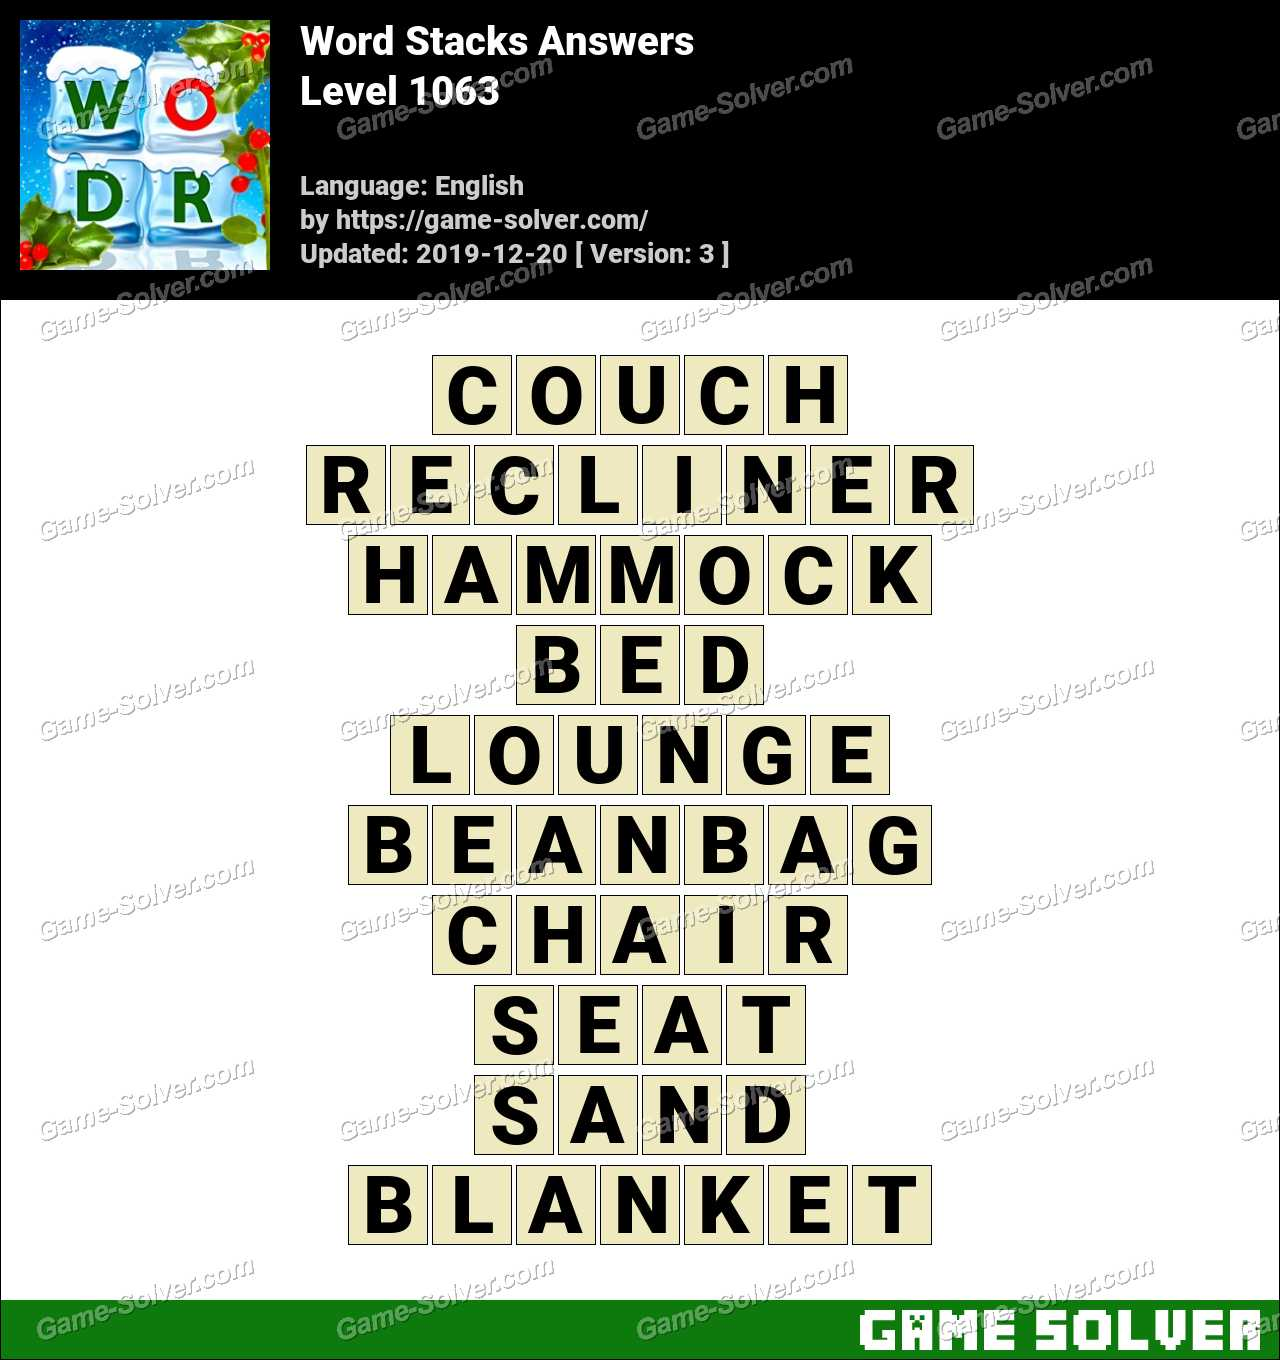 Word Stacks Level 1063 Answers